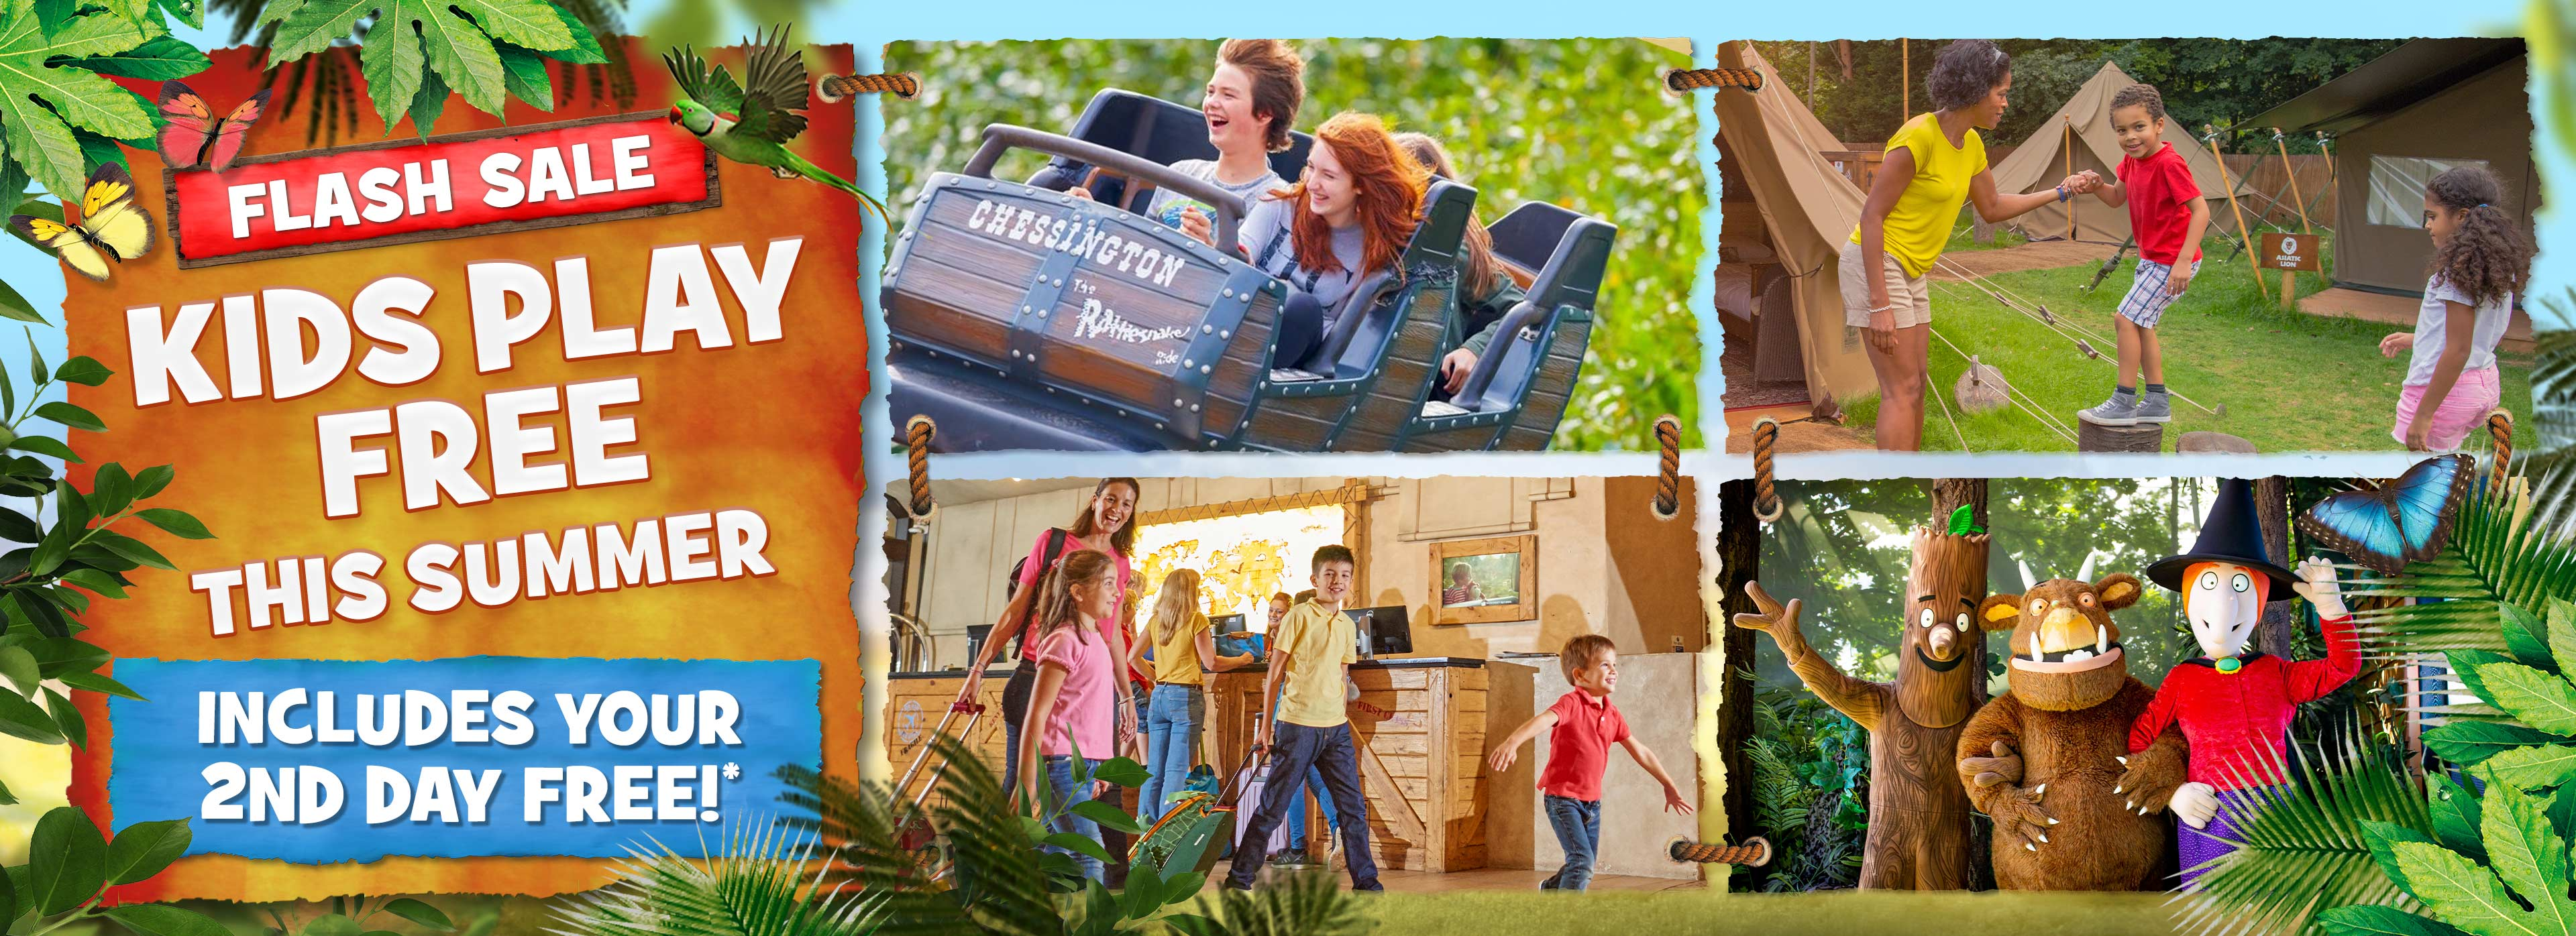 Kids Play FREE summer deal with Chessington Holidays